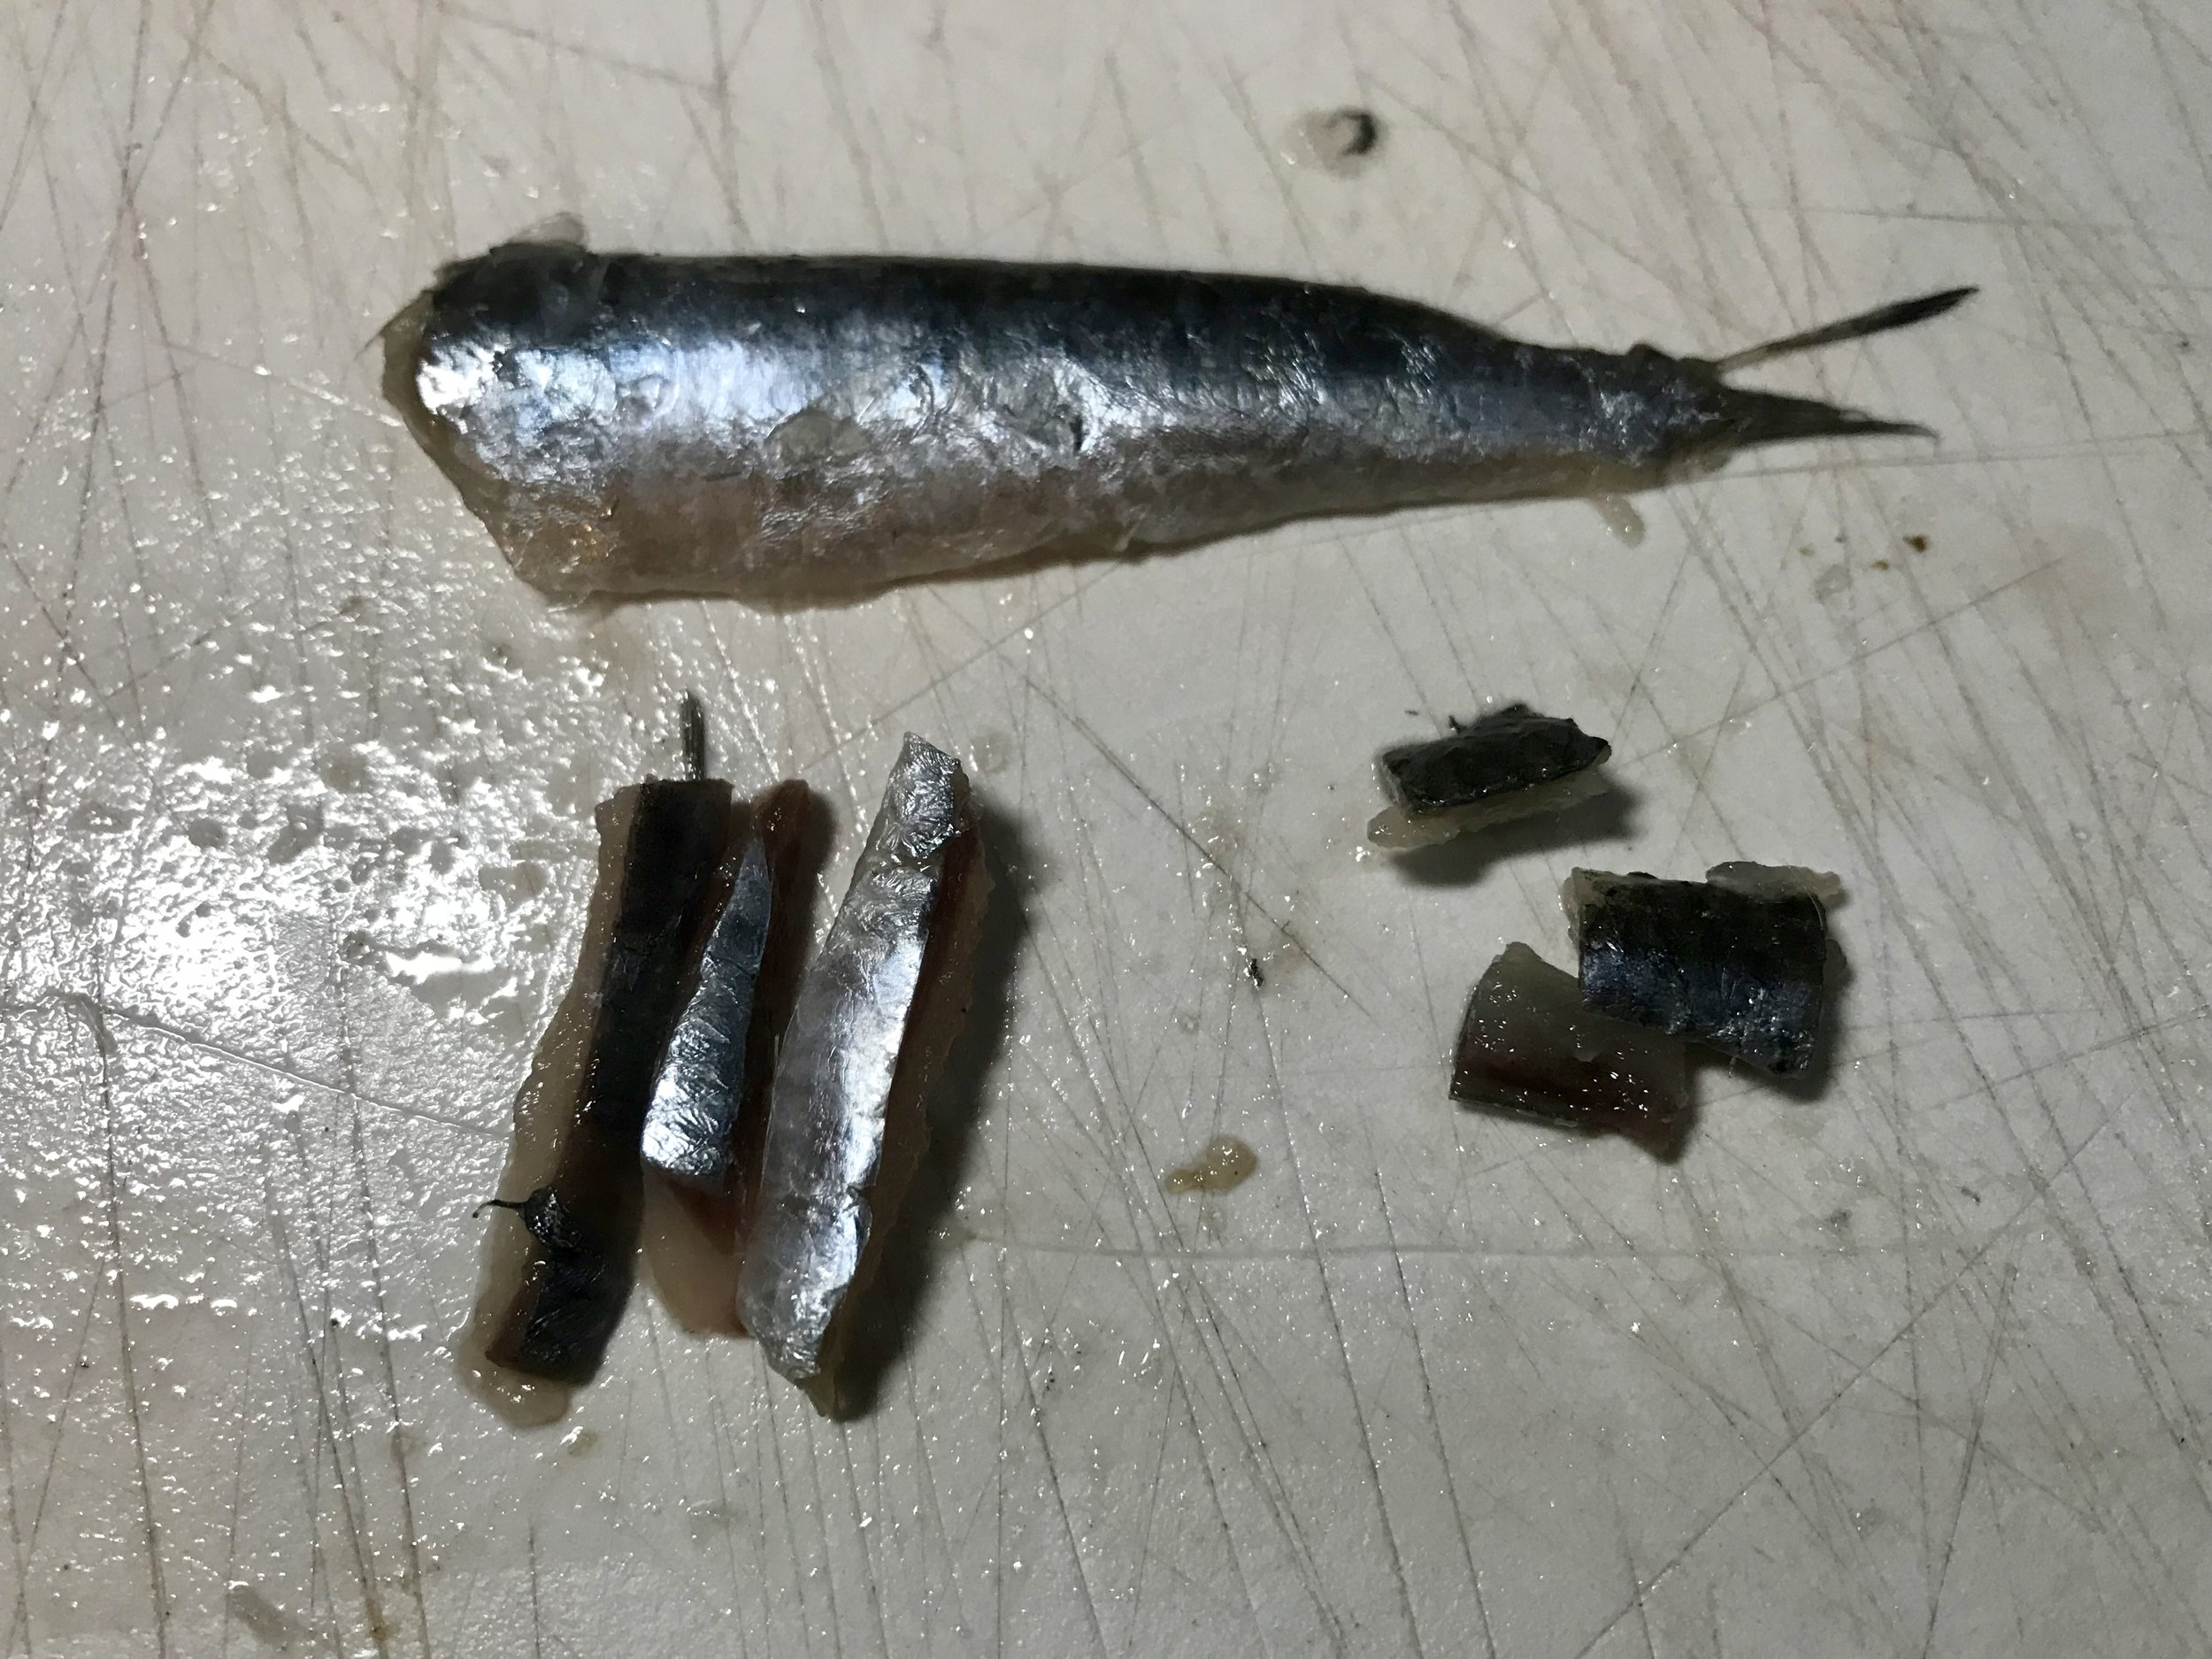 Fillet the anchovy and cut into appropriate sized pieces for your presentation.